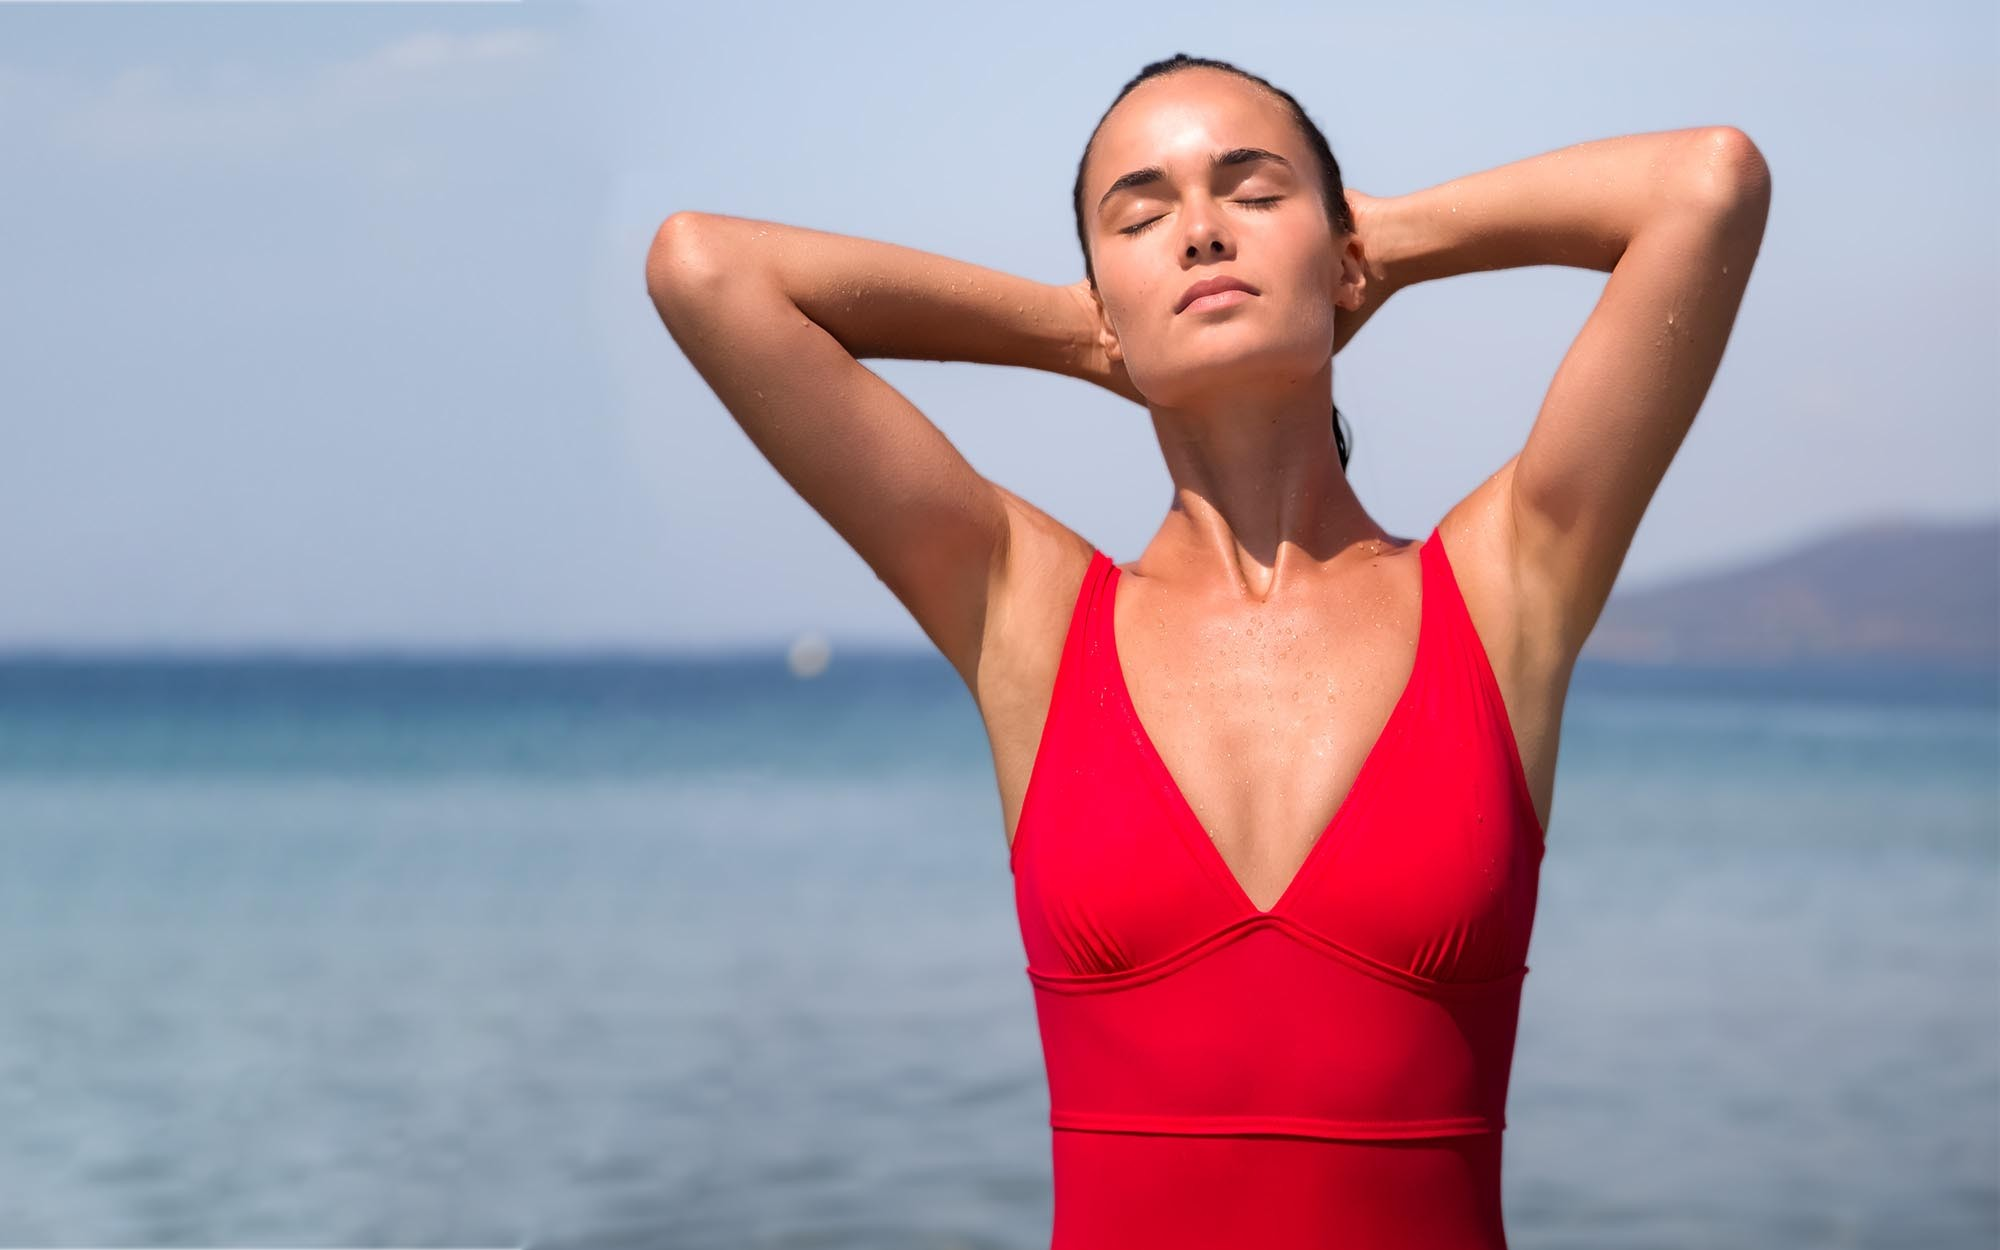 The red swimsuit